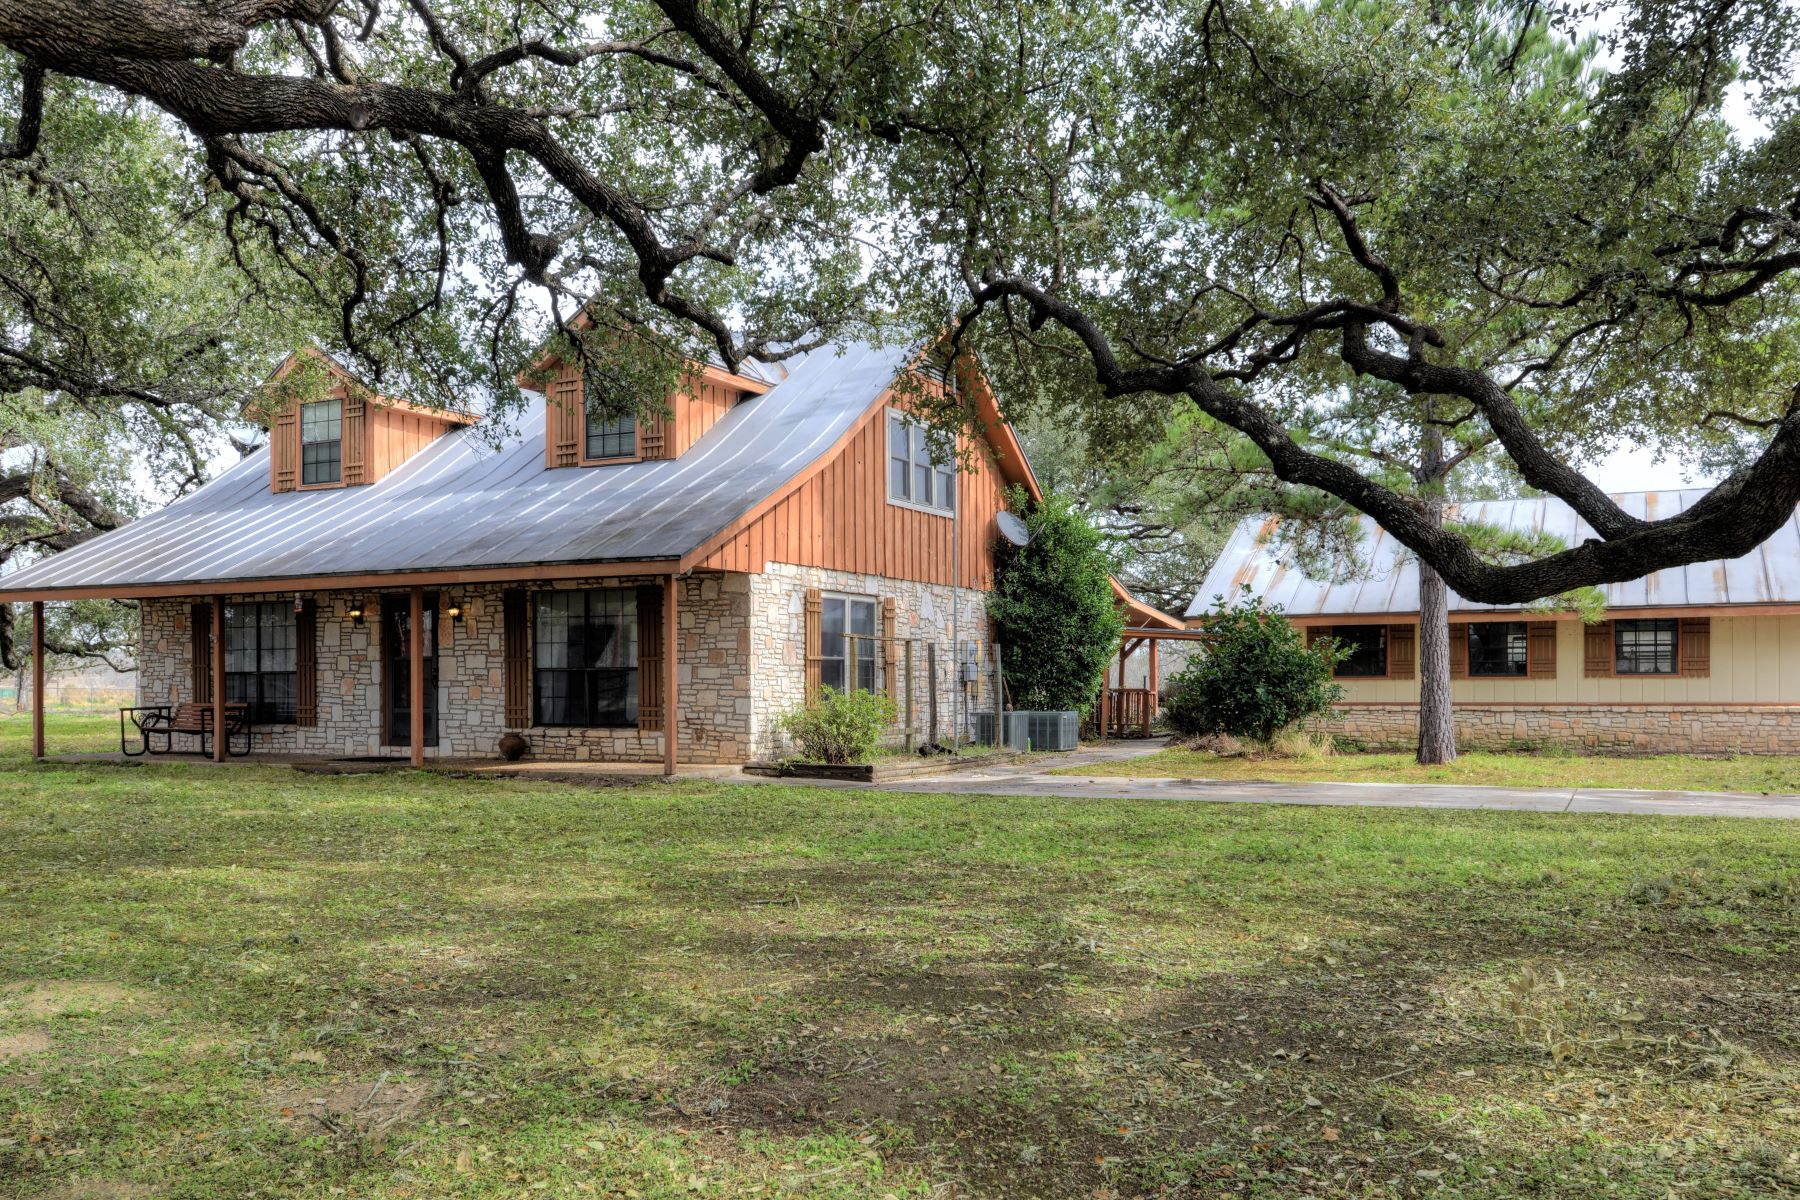 Single Family Homes for Active at Inviting Country Home 2452 2nd Street Pleasanton, Texas 78064 United States